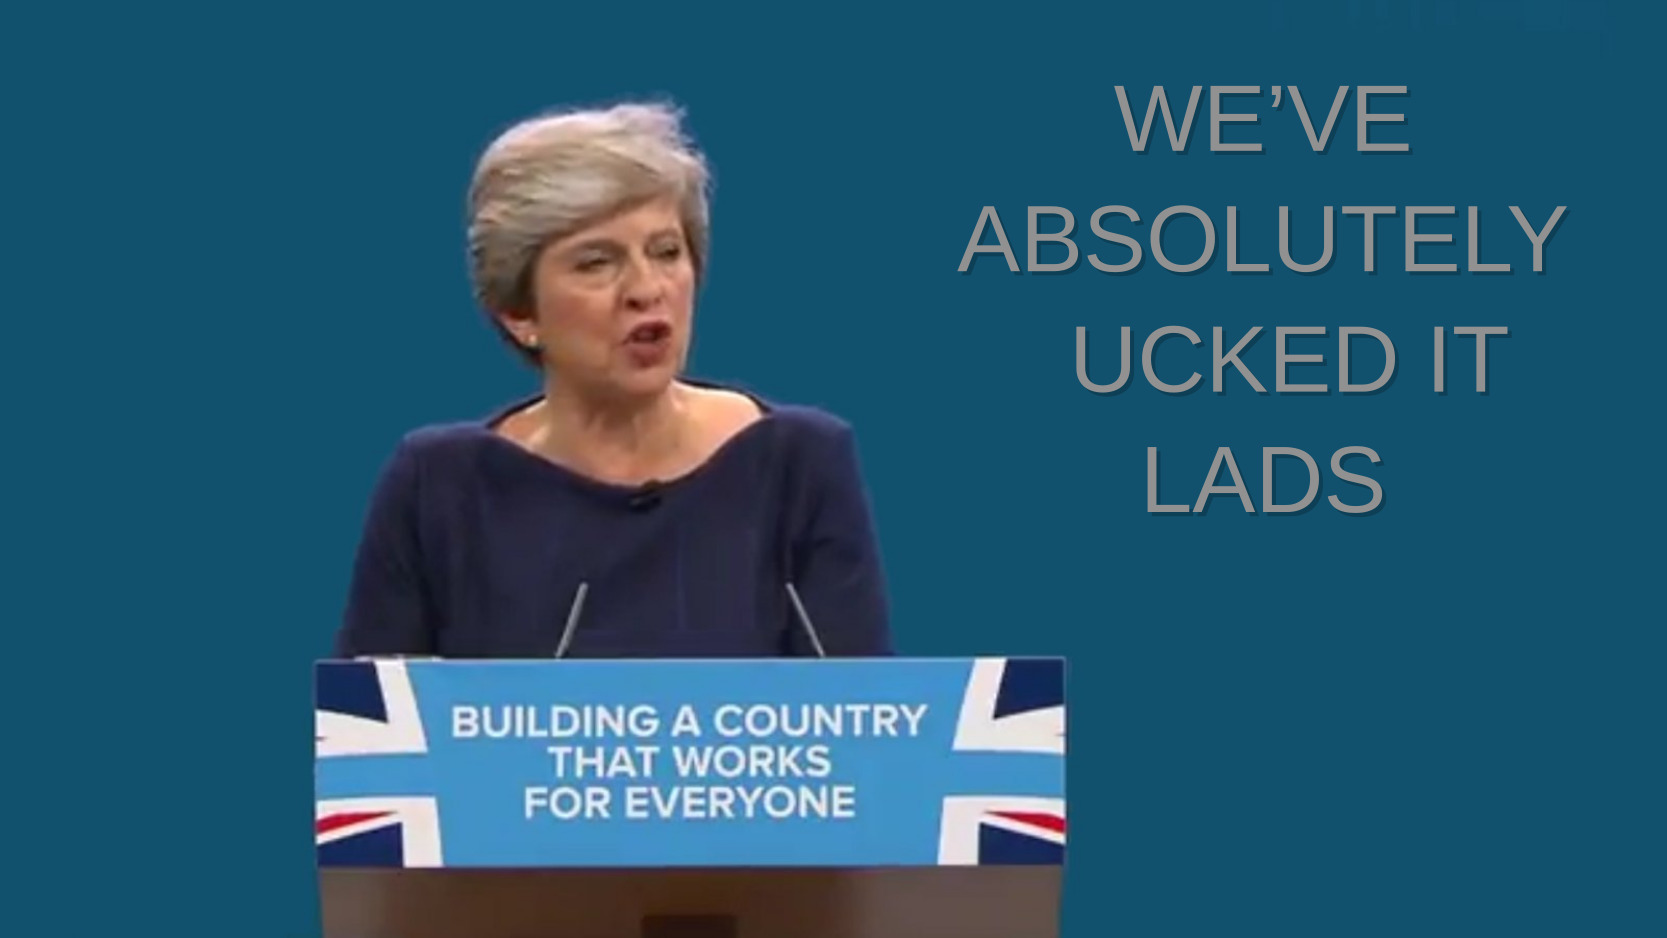 Theresa May in front of spoof conference backdrop saying 'We've absolutely ucked it lads'